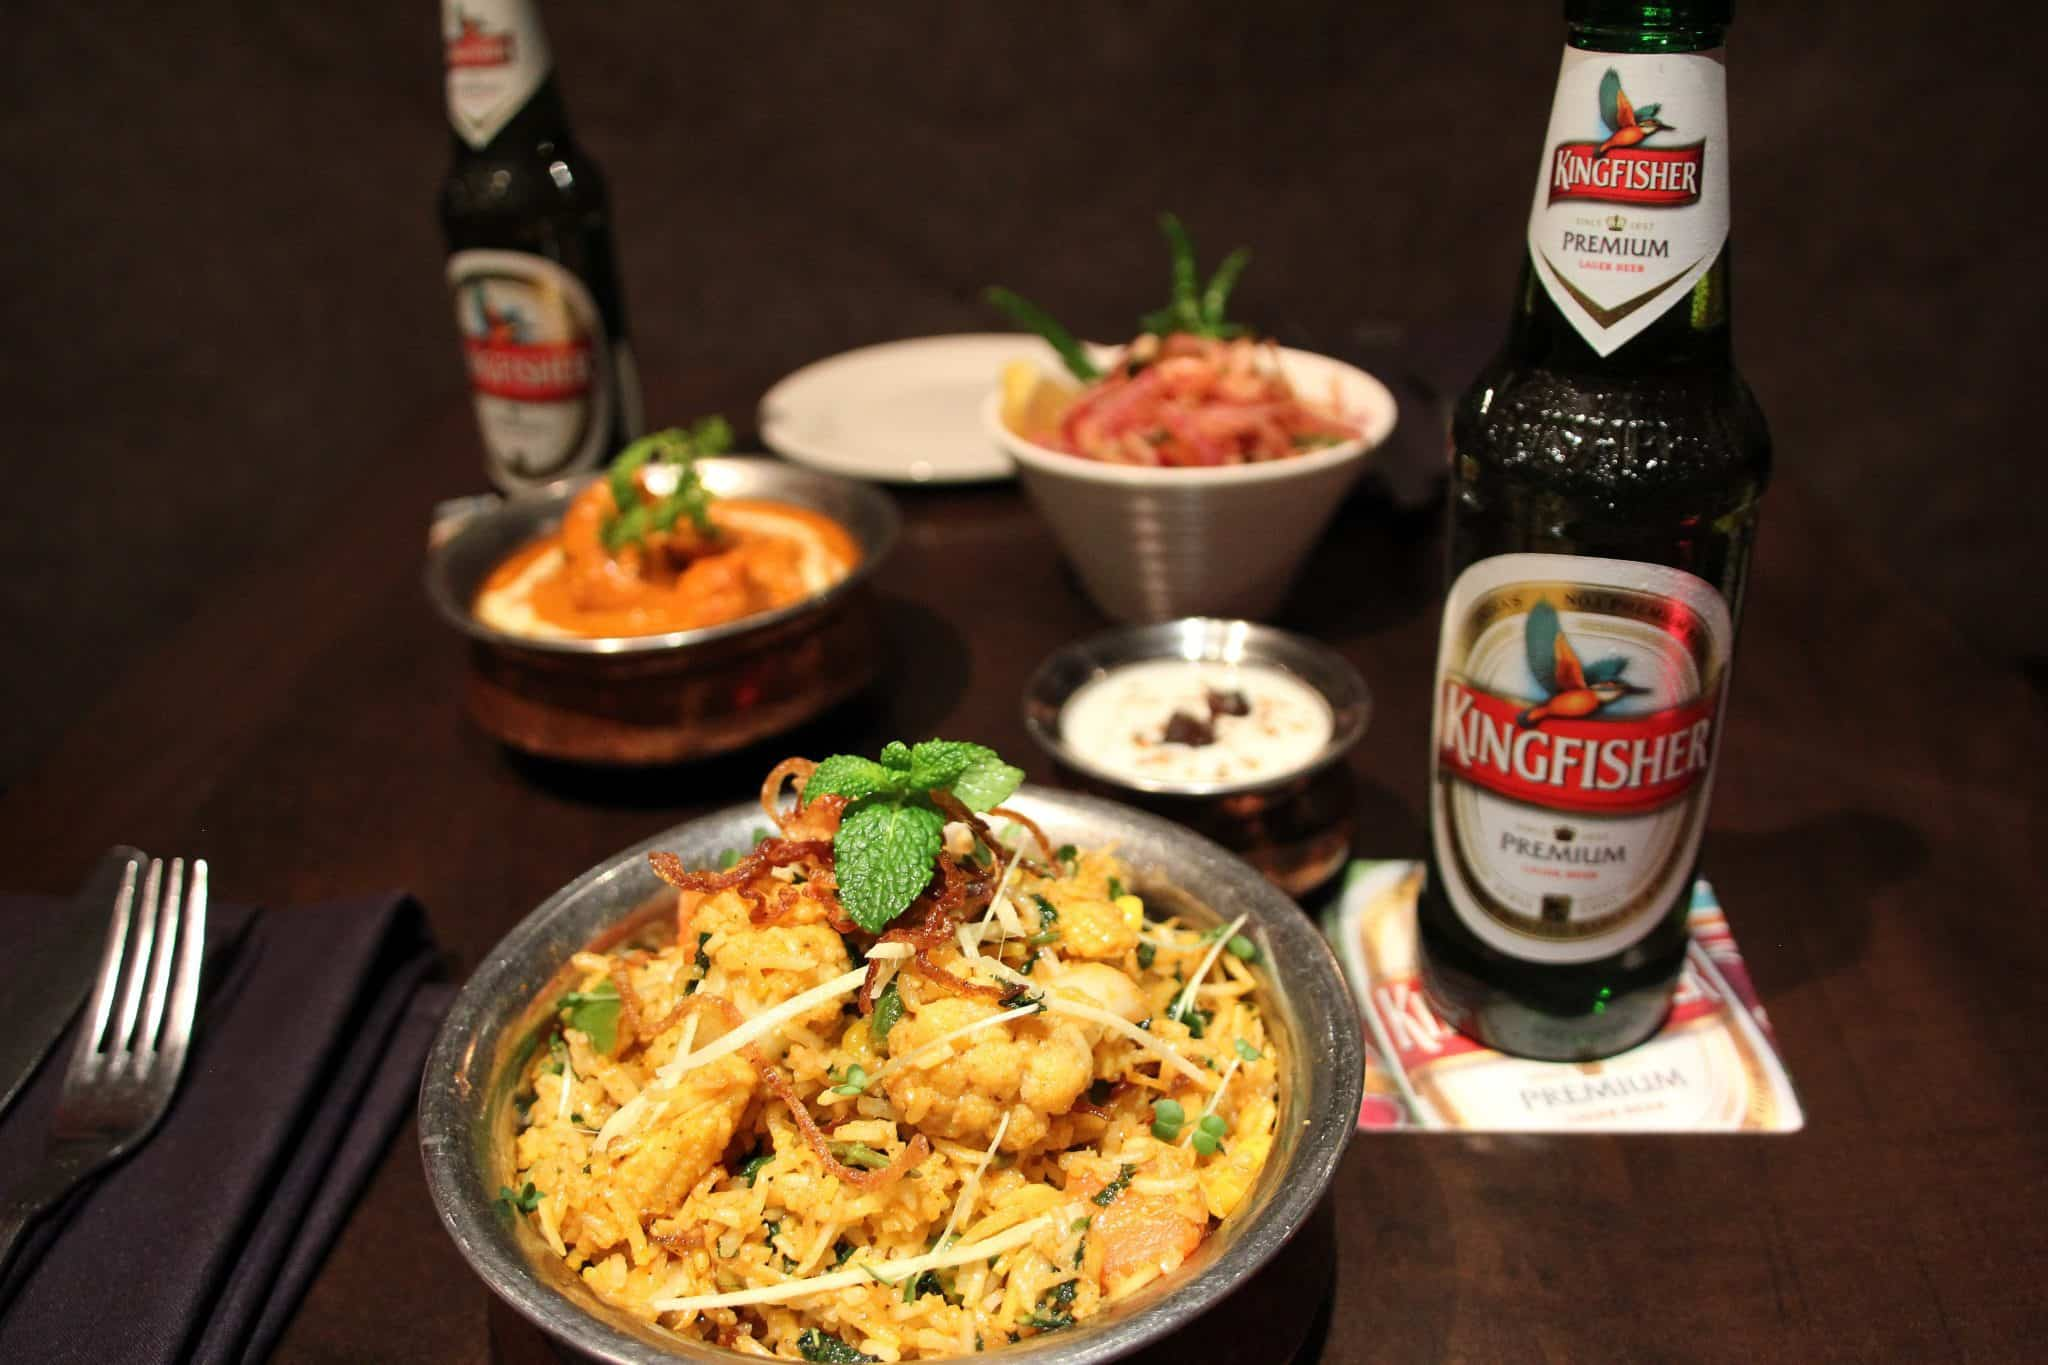 Kingfisher Beer curry houses